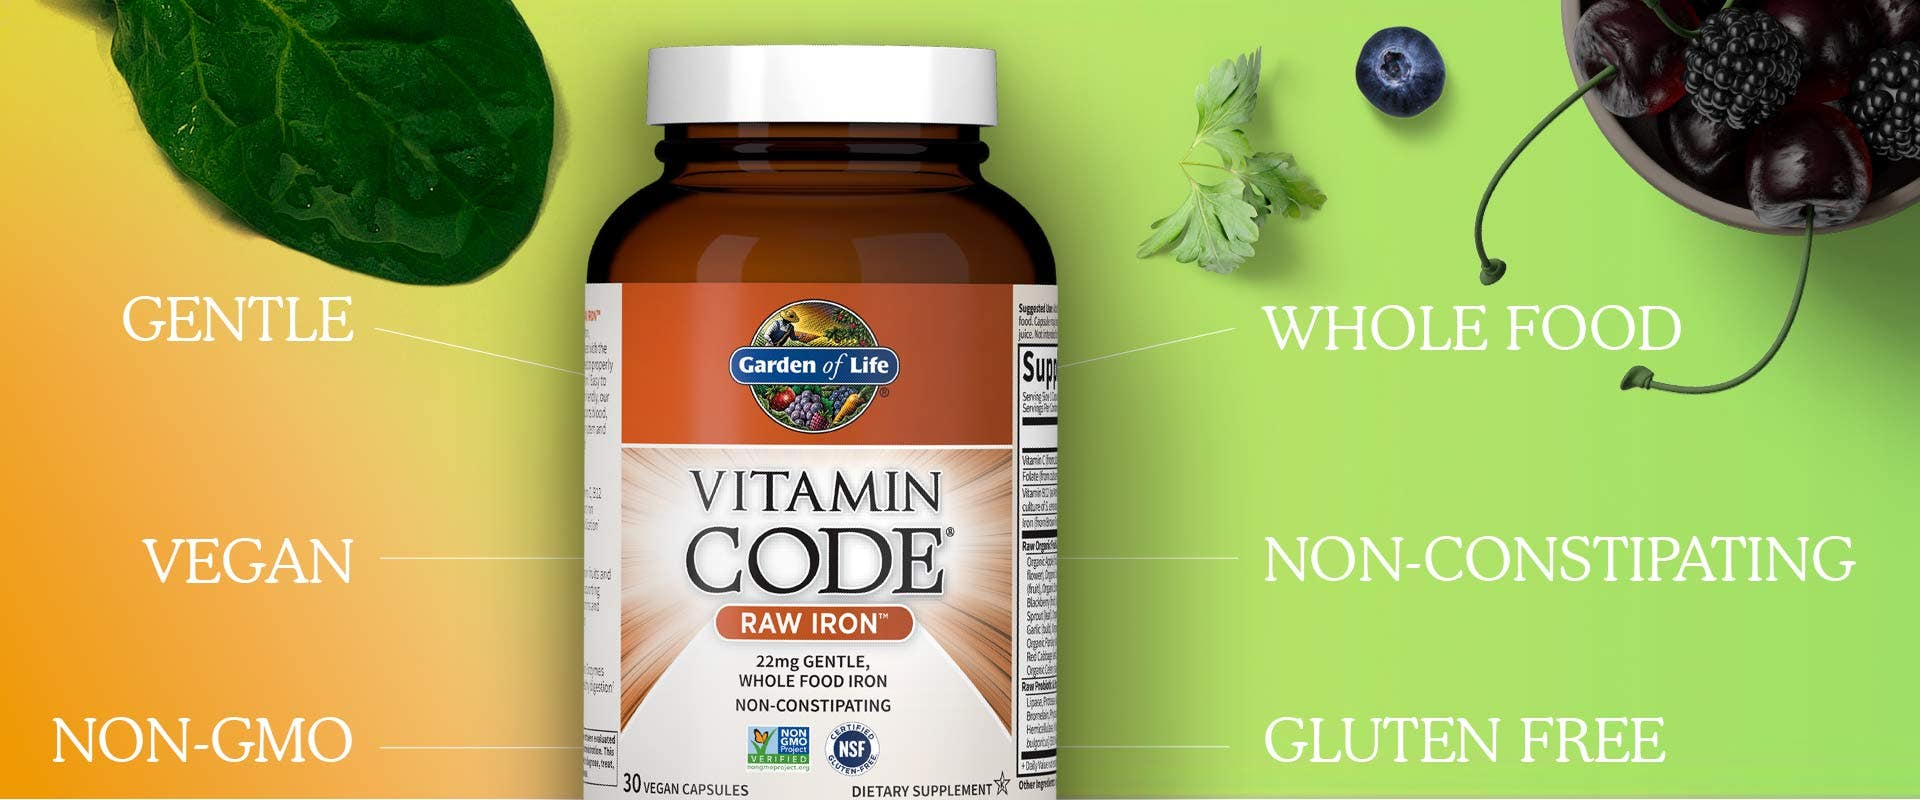 raw iron by vitamin code from garden of life